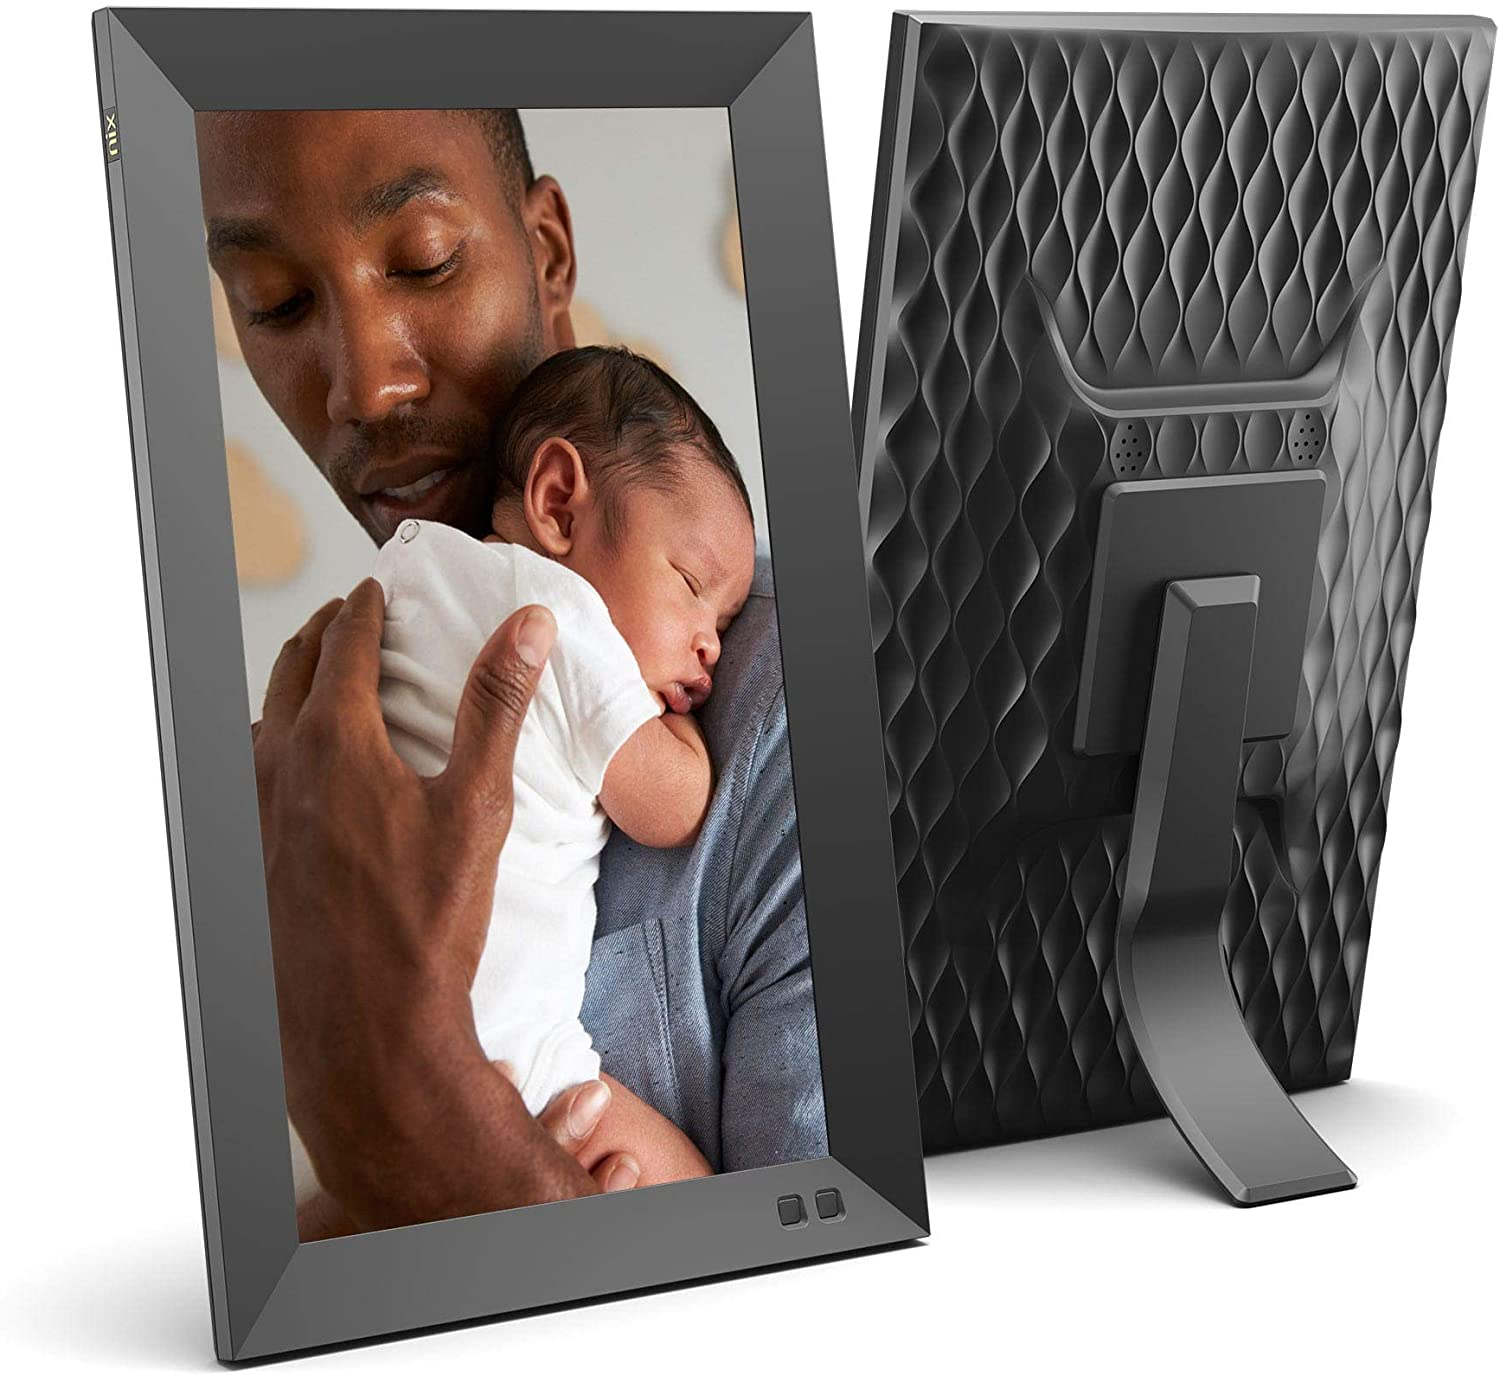 NIX 13.3 Inch Digital Picture Frame - Portrait or Landscape Stand, Full HD Resolution, Auto-Rotate, Remote Control - Mix Photos and Videos in The Same Slideshow